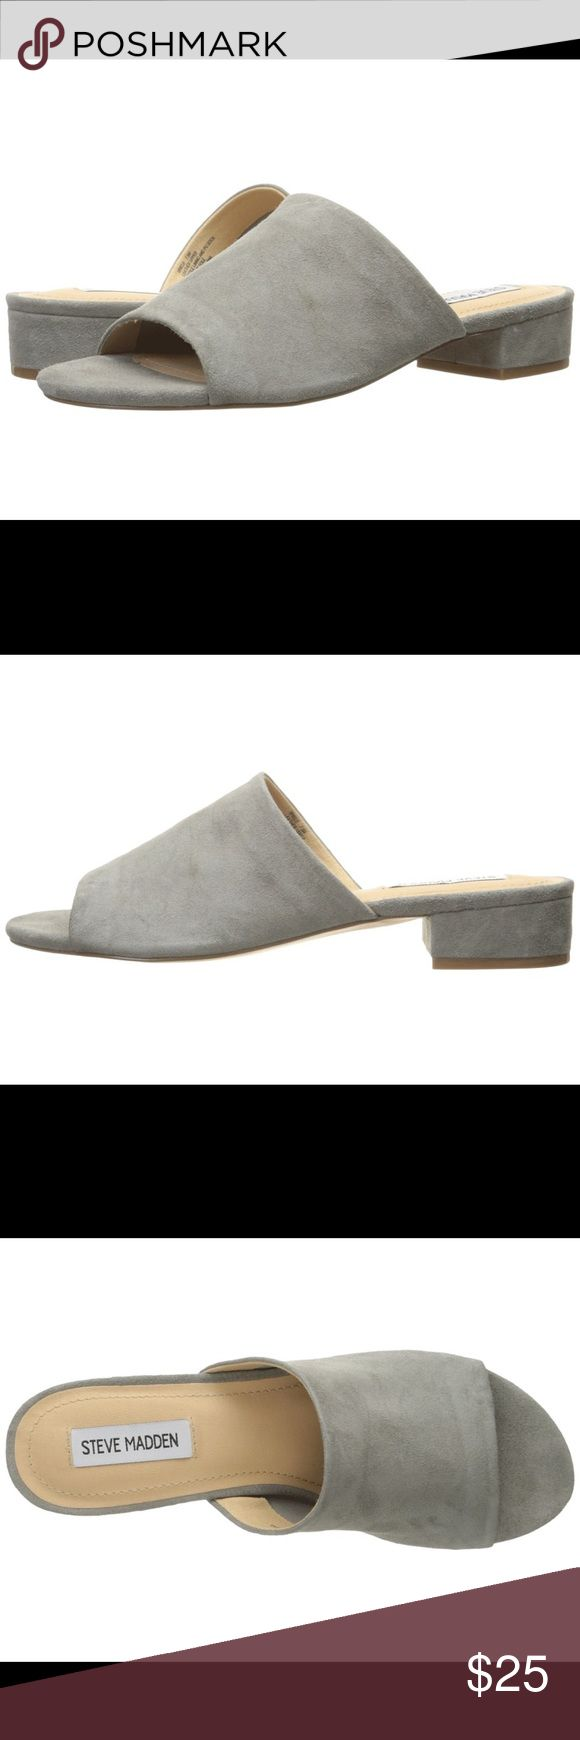 Steve Madden Briele Mules in Grey Suede Steve Madden Briele Mules in Grey Suede. Bought this summer. Comfortable and soft. Steve Madden Shoes Mules & Clogs